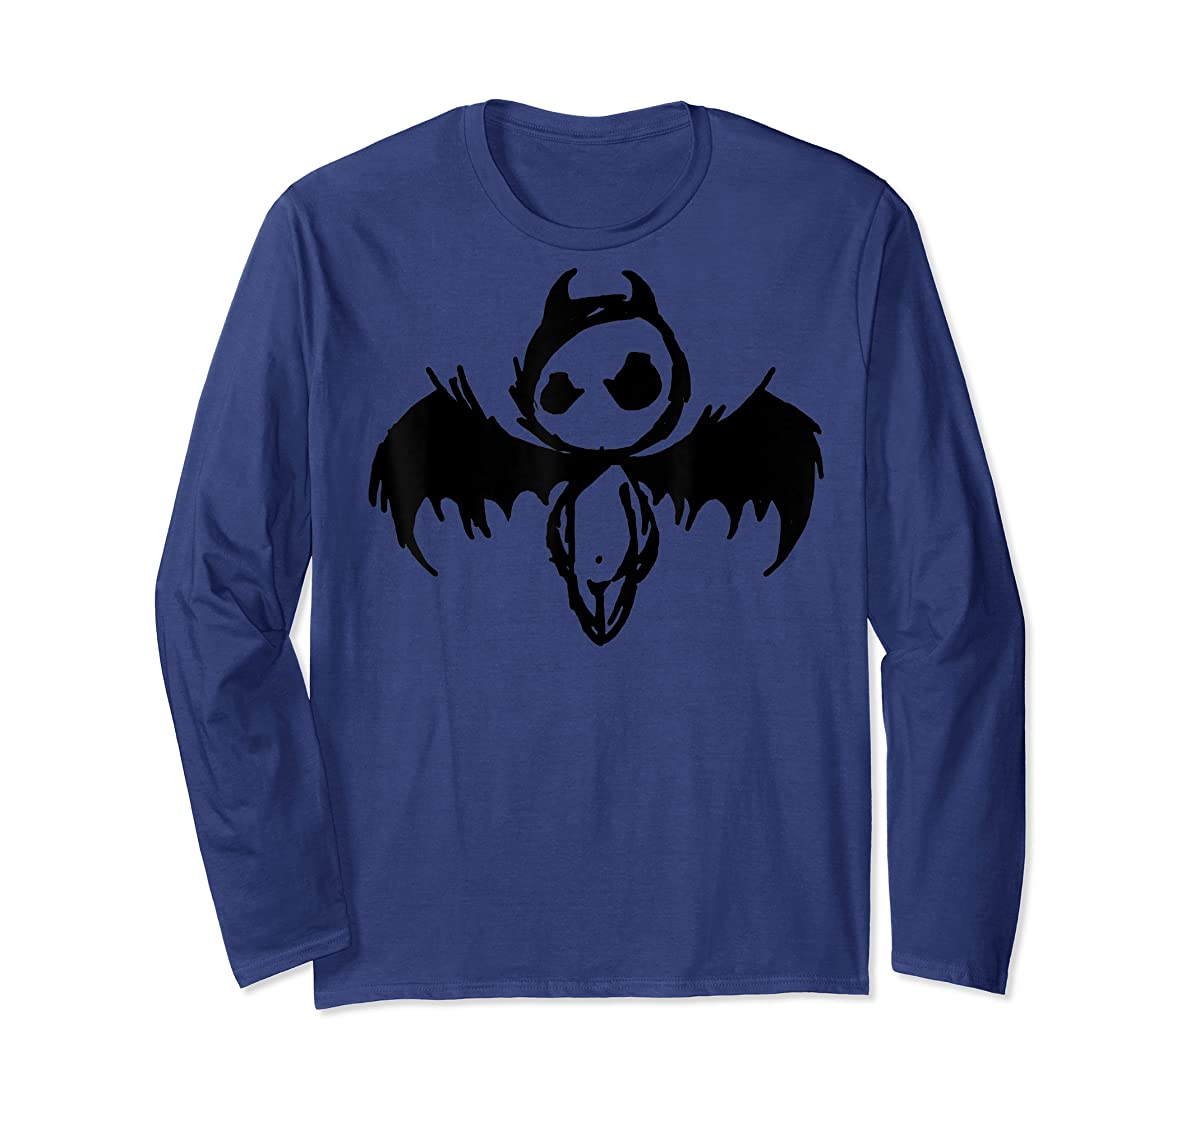 Cute Demon Vintage Couple Matching Halloween Party Costume  T-Shirt-Long Sleeve-Navy